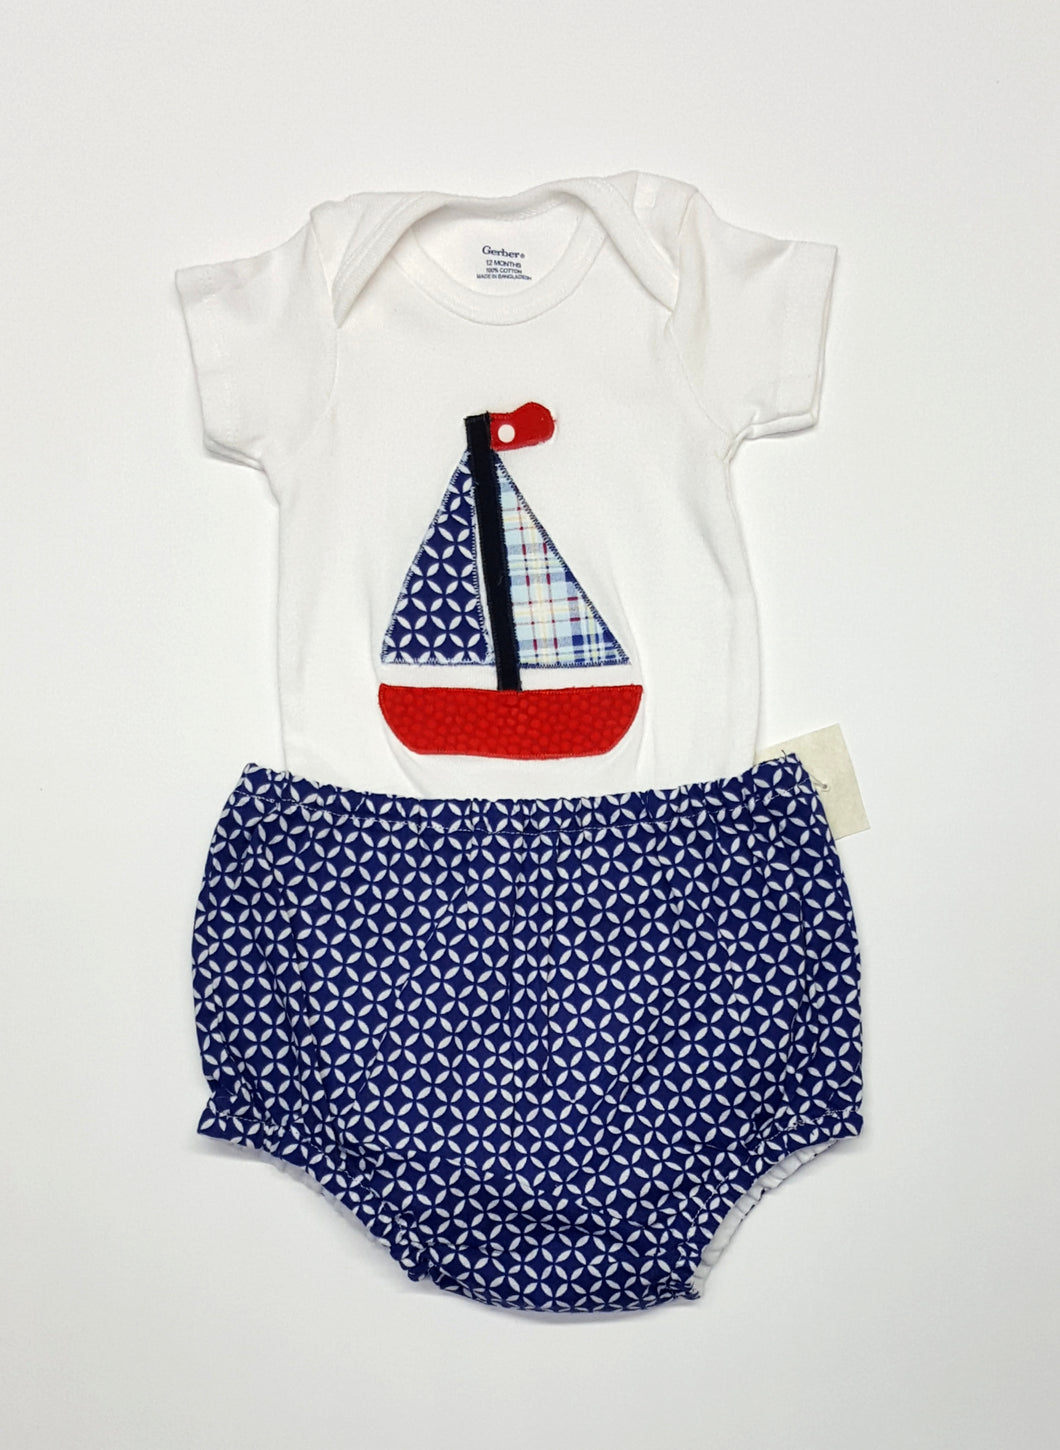 Body suit and diaper cover set ~ 12 months